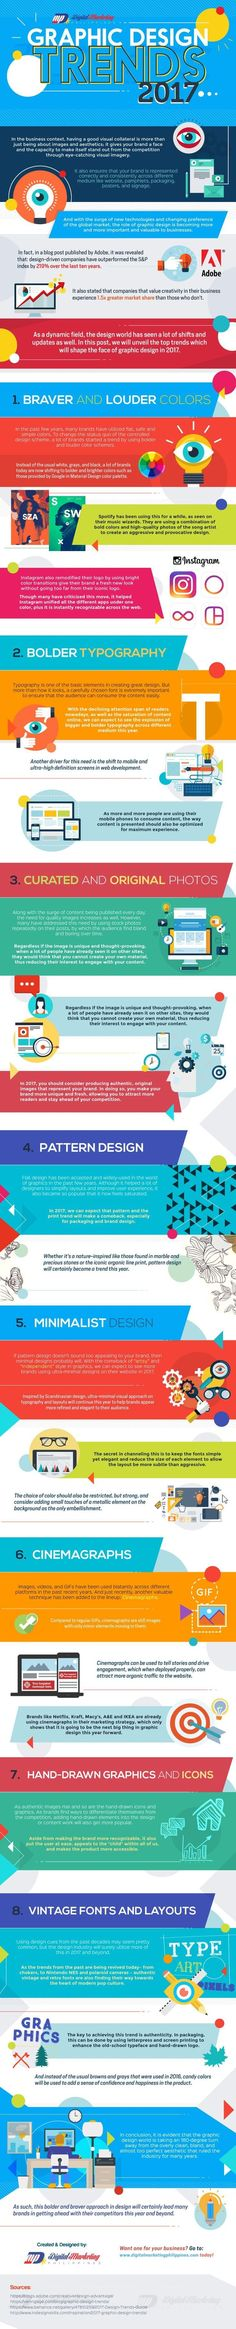 8 Graphic Design Trends to Add Some Oomph to Your 2017 Marketing Campaign [Infographic] #onlinebusiness #startup #entrepreneur